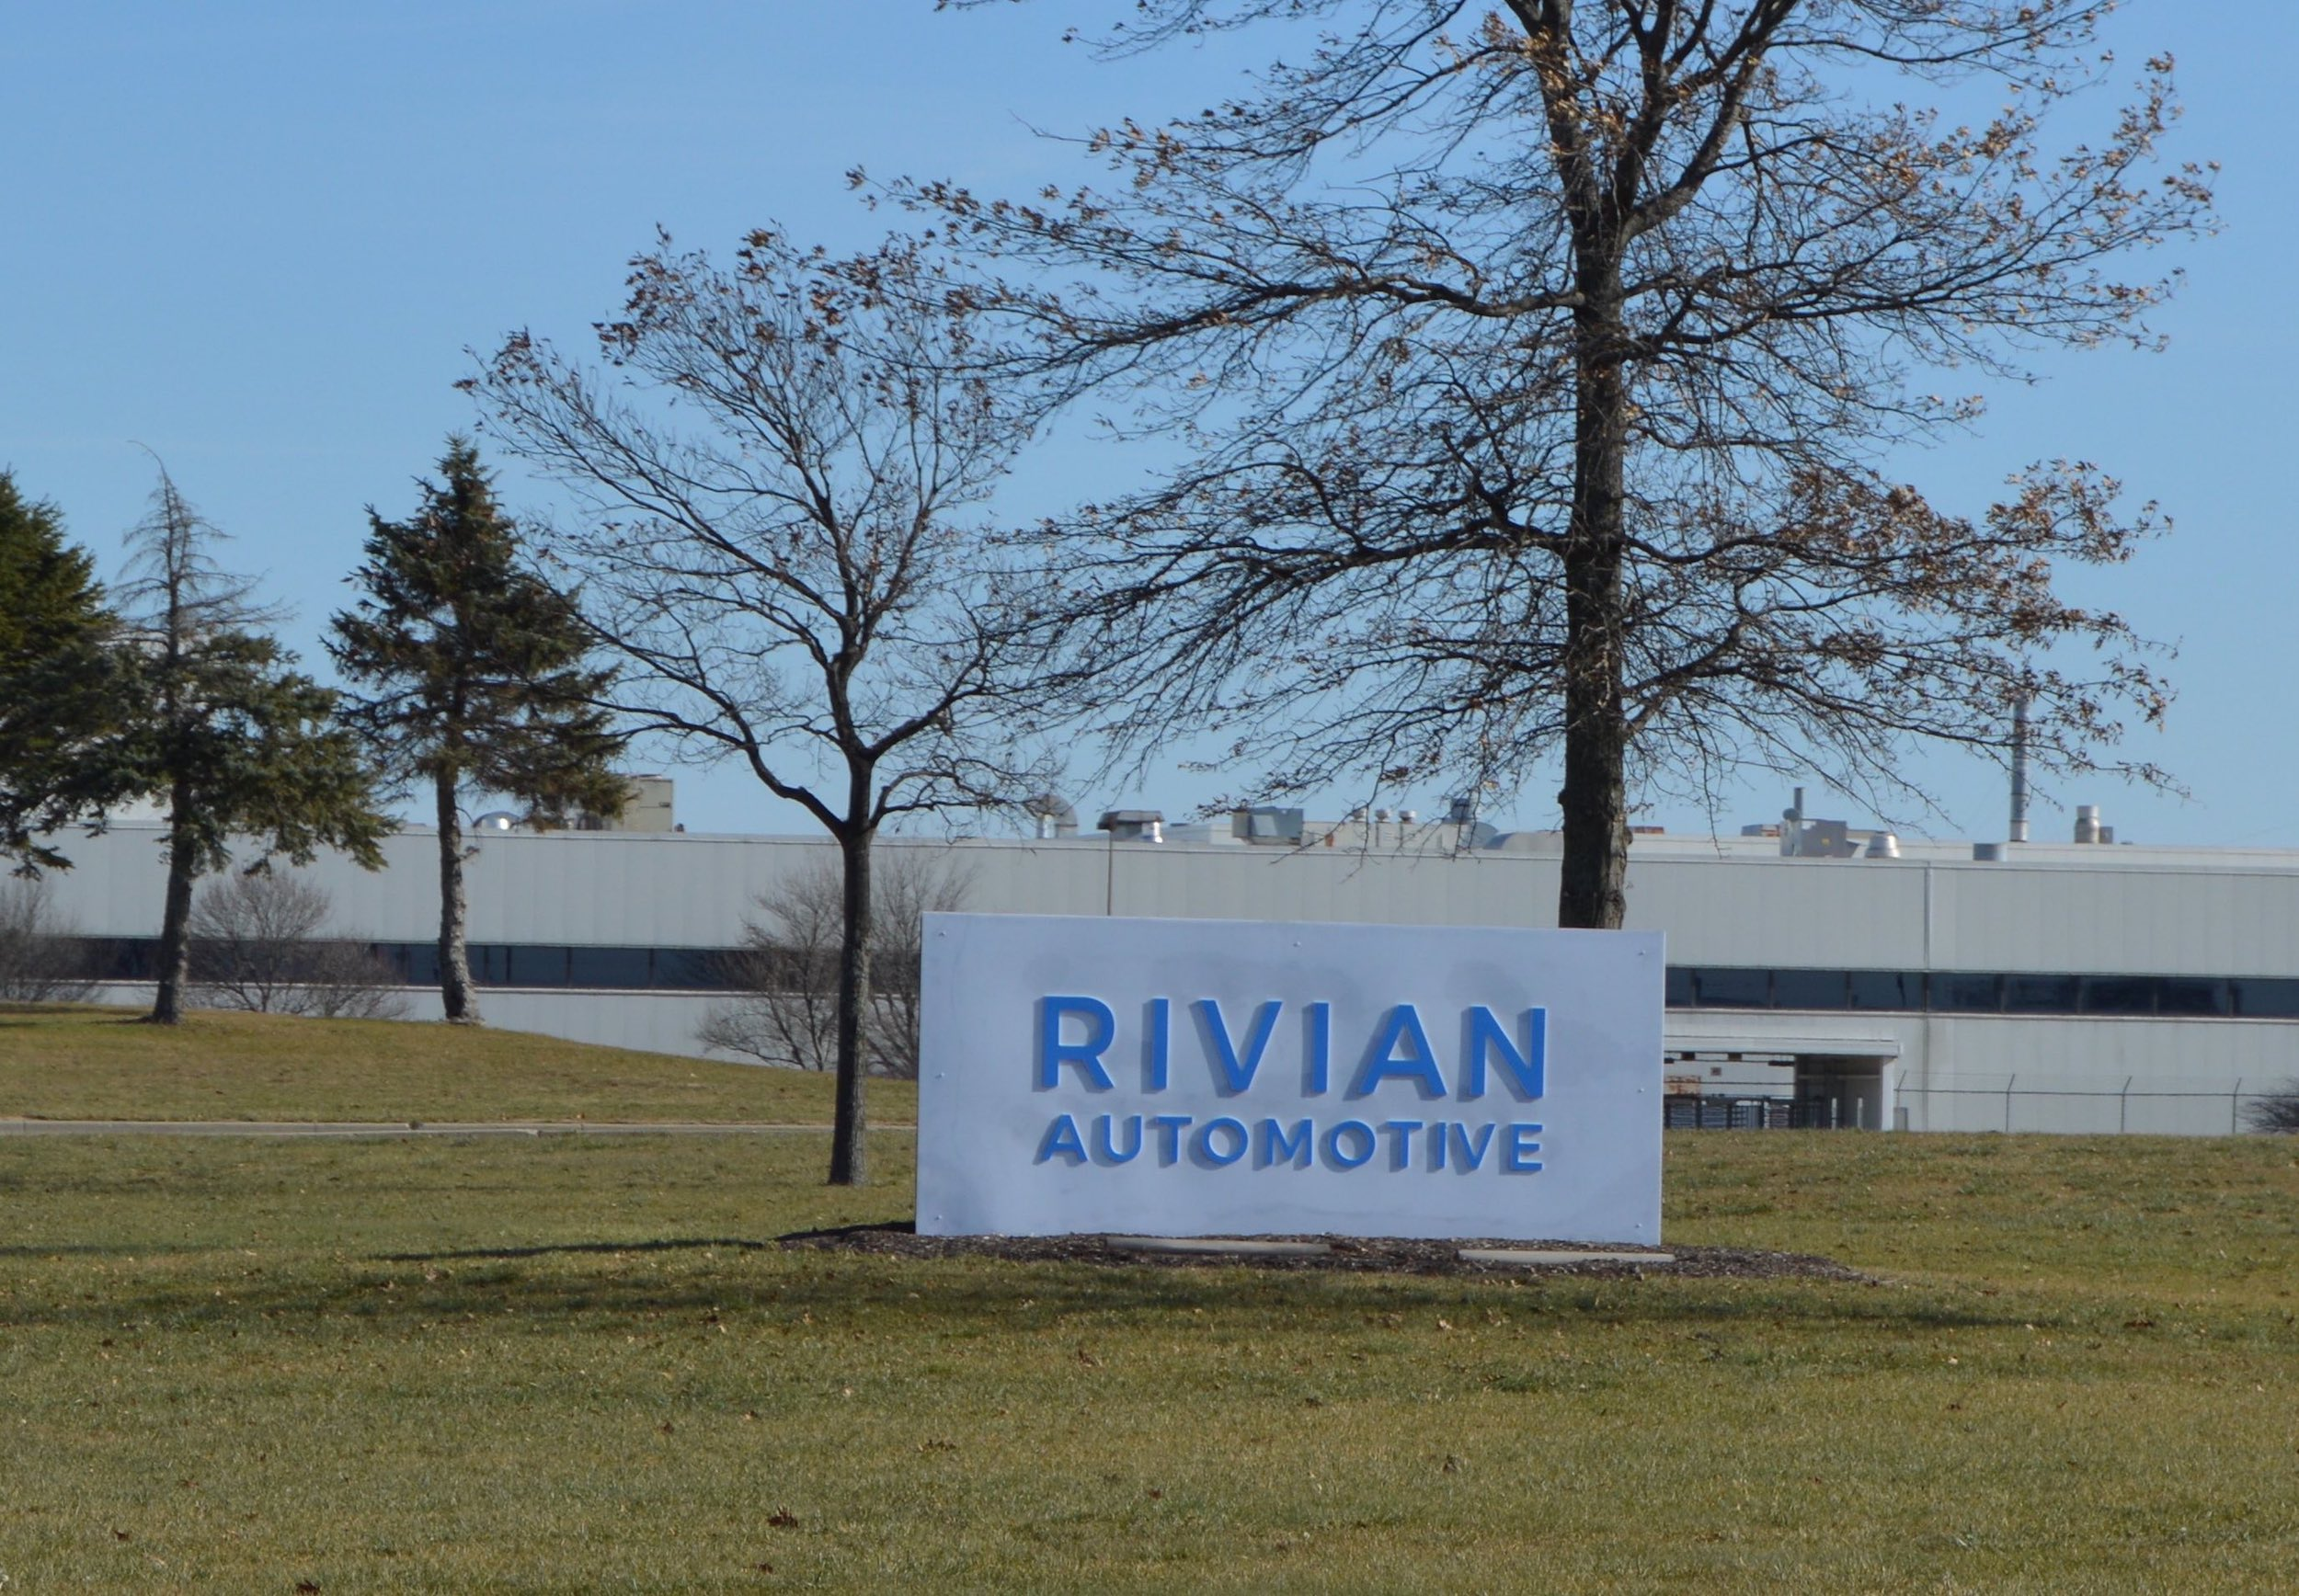 Normal Town Council members unanimously approved the first year of tax abatements for automotive startup Rivian. (Image credit:Christian Prenzler)